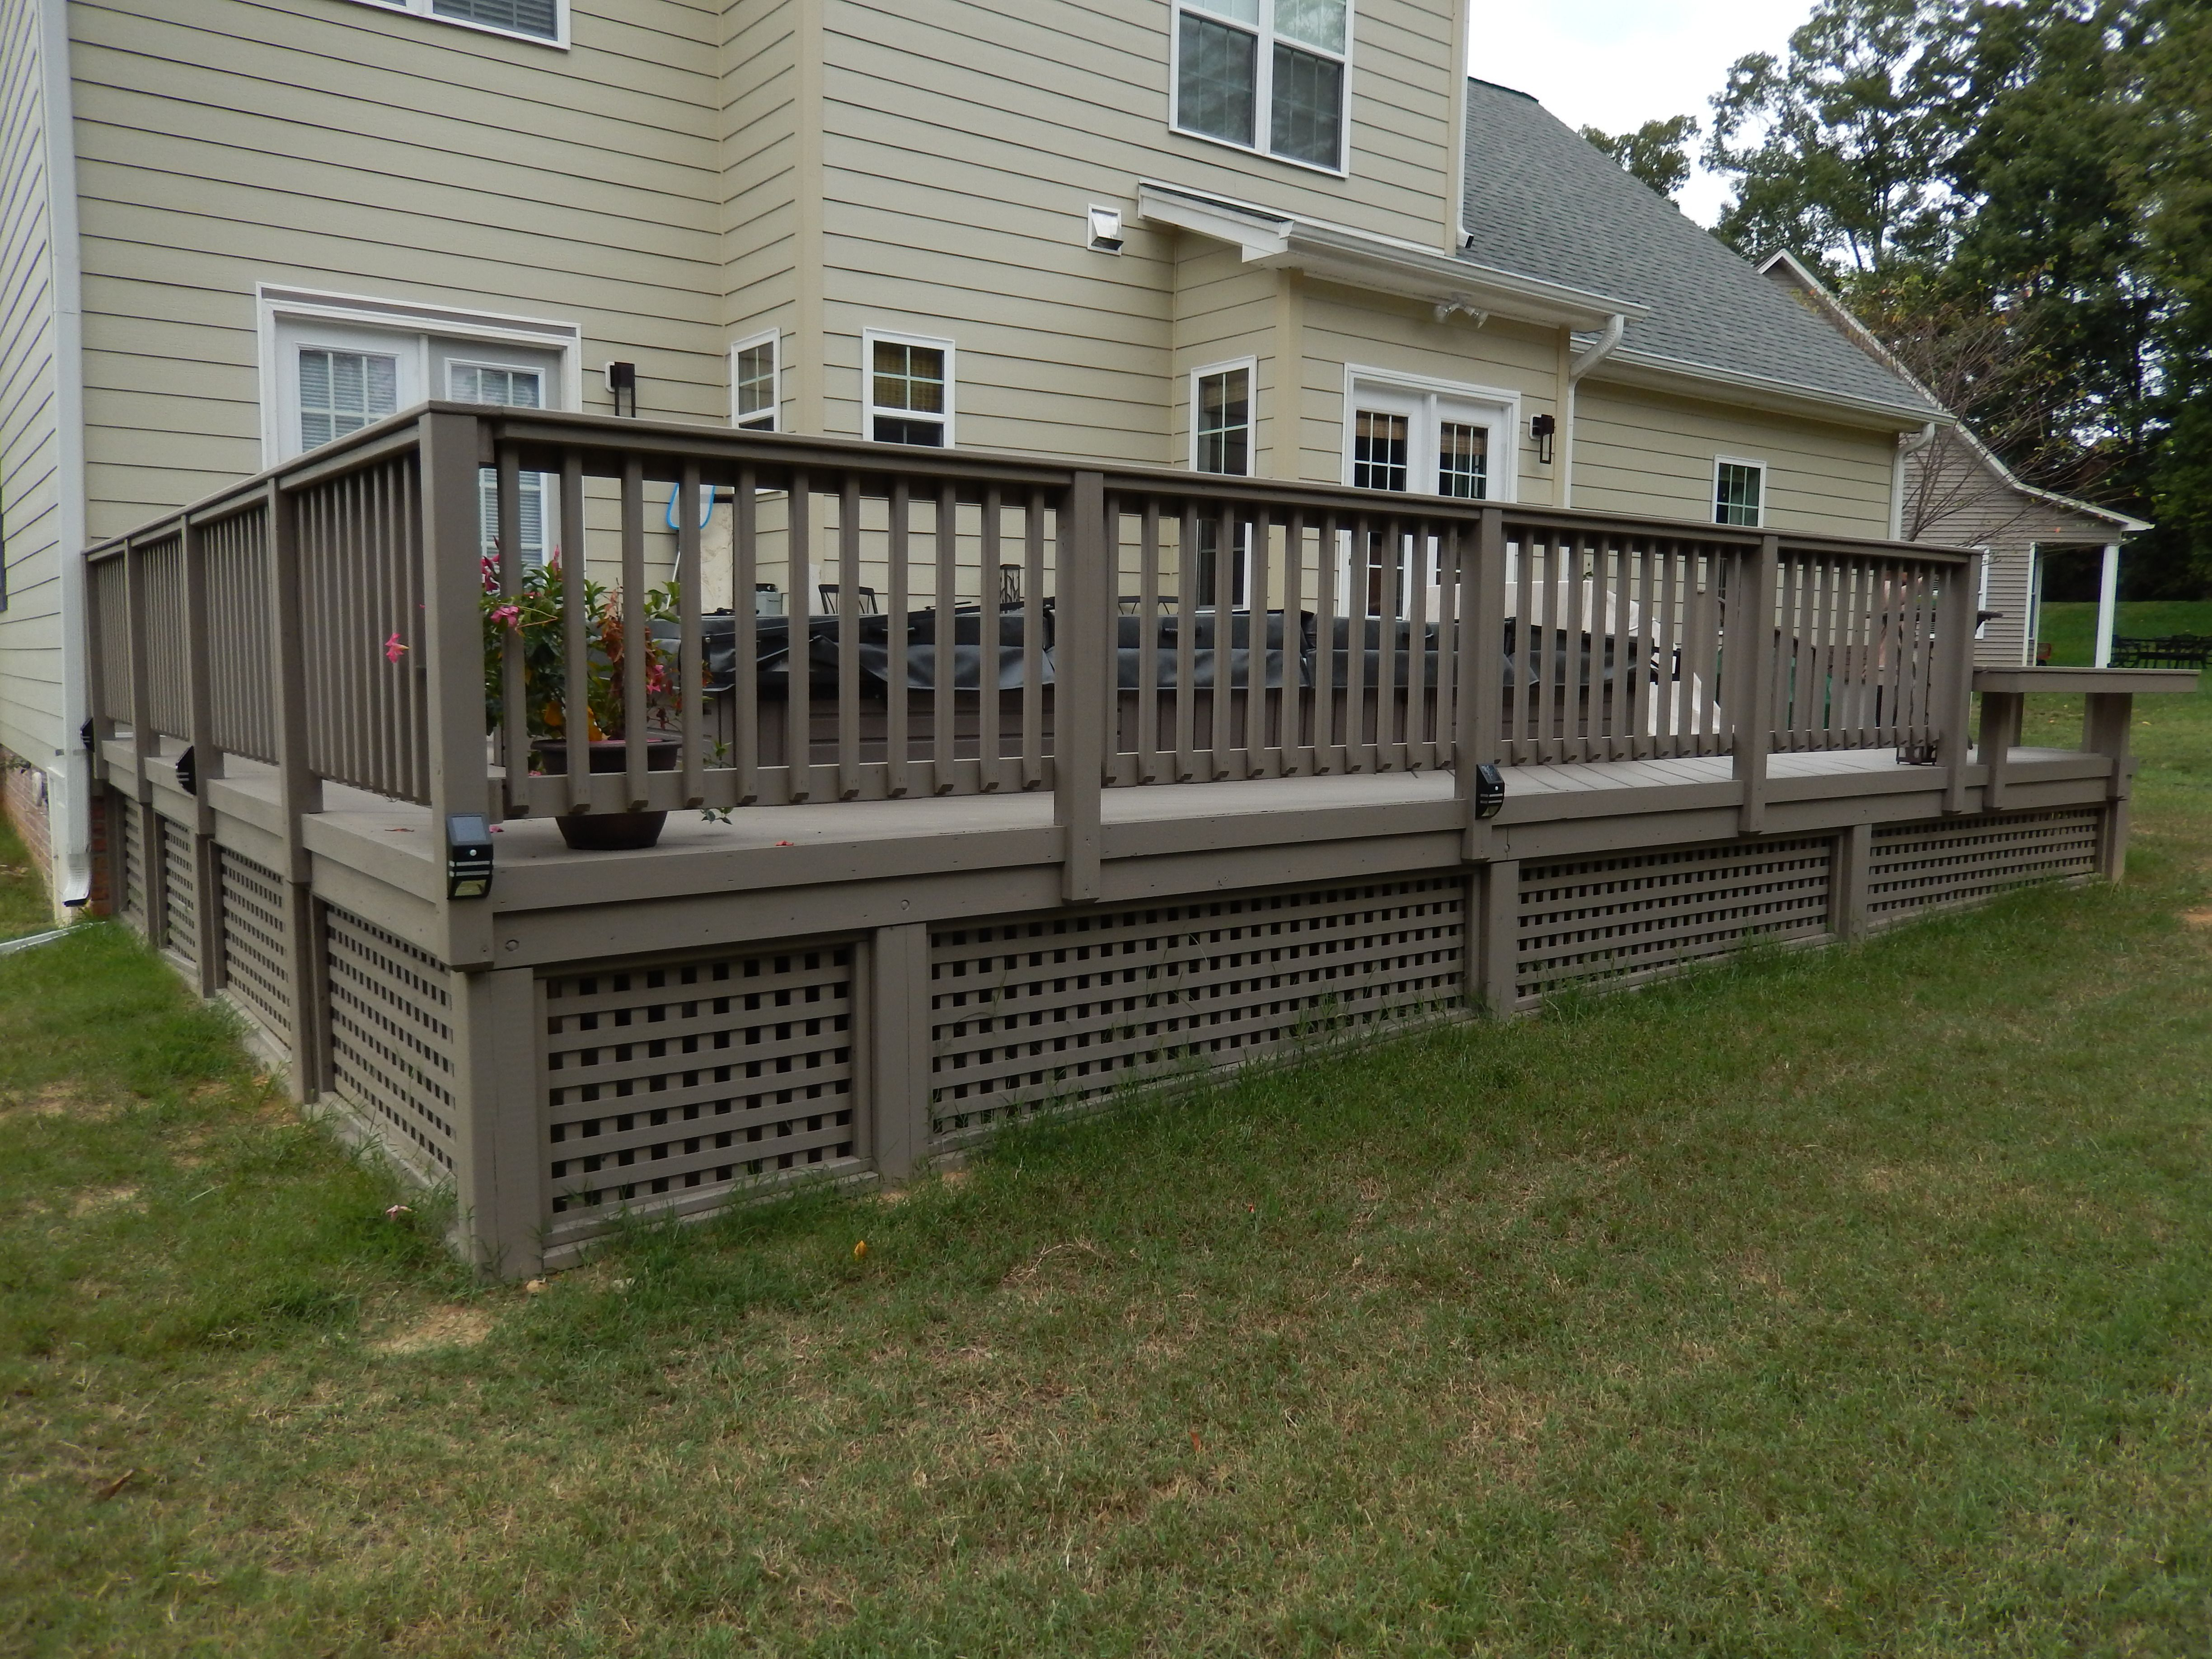 Lovely Low Maintenance Deck With Pool Spa Porch Design Deck Skirting Porch Patio